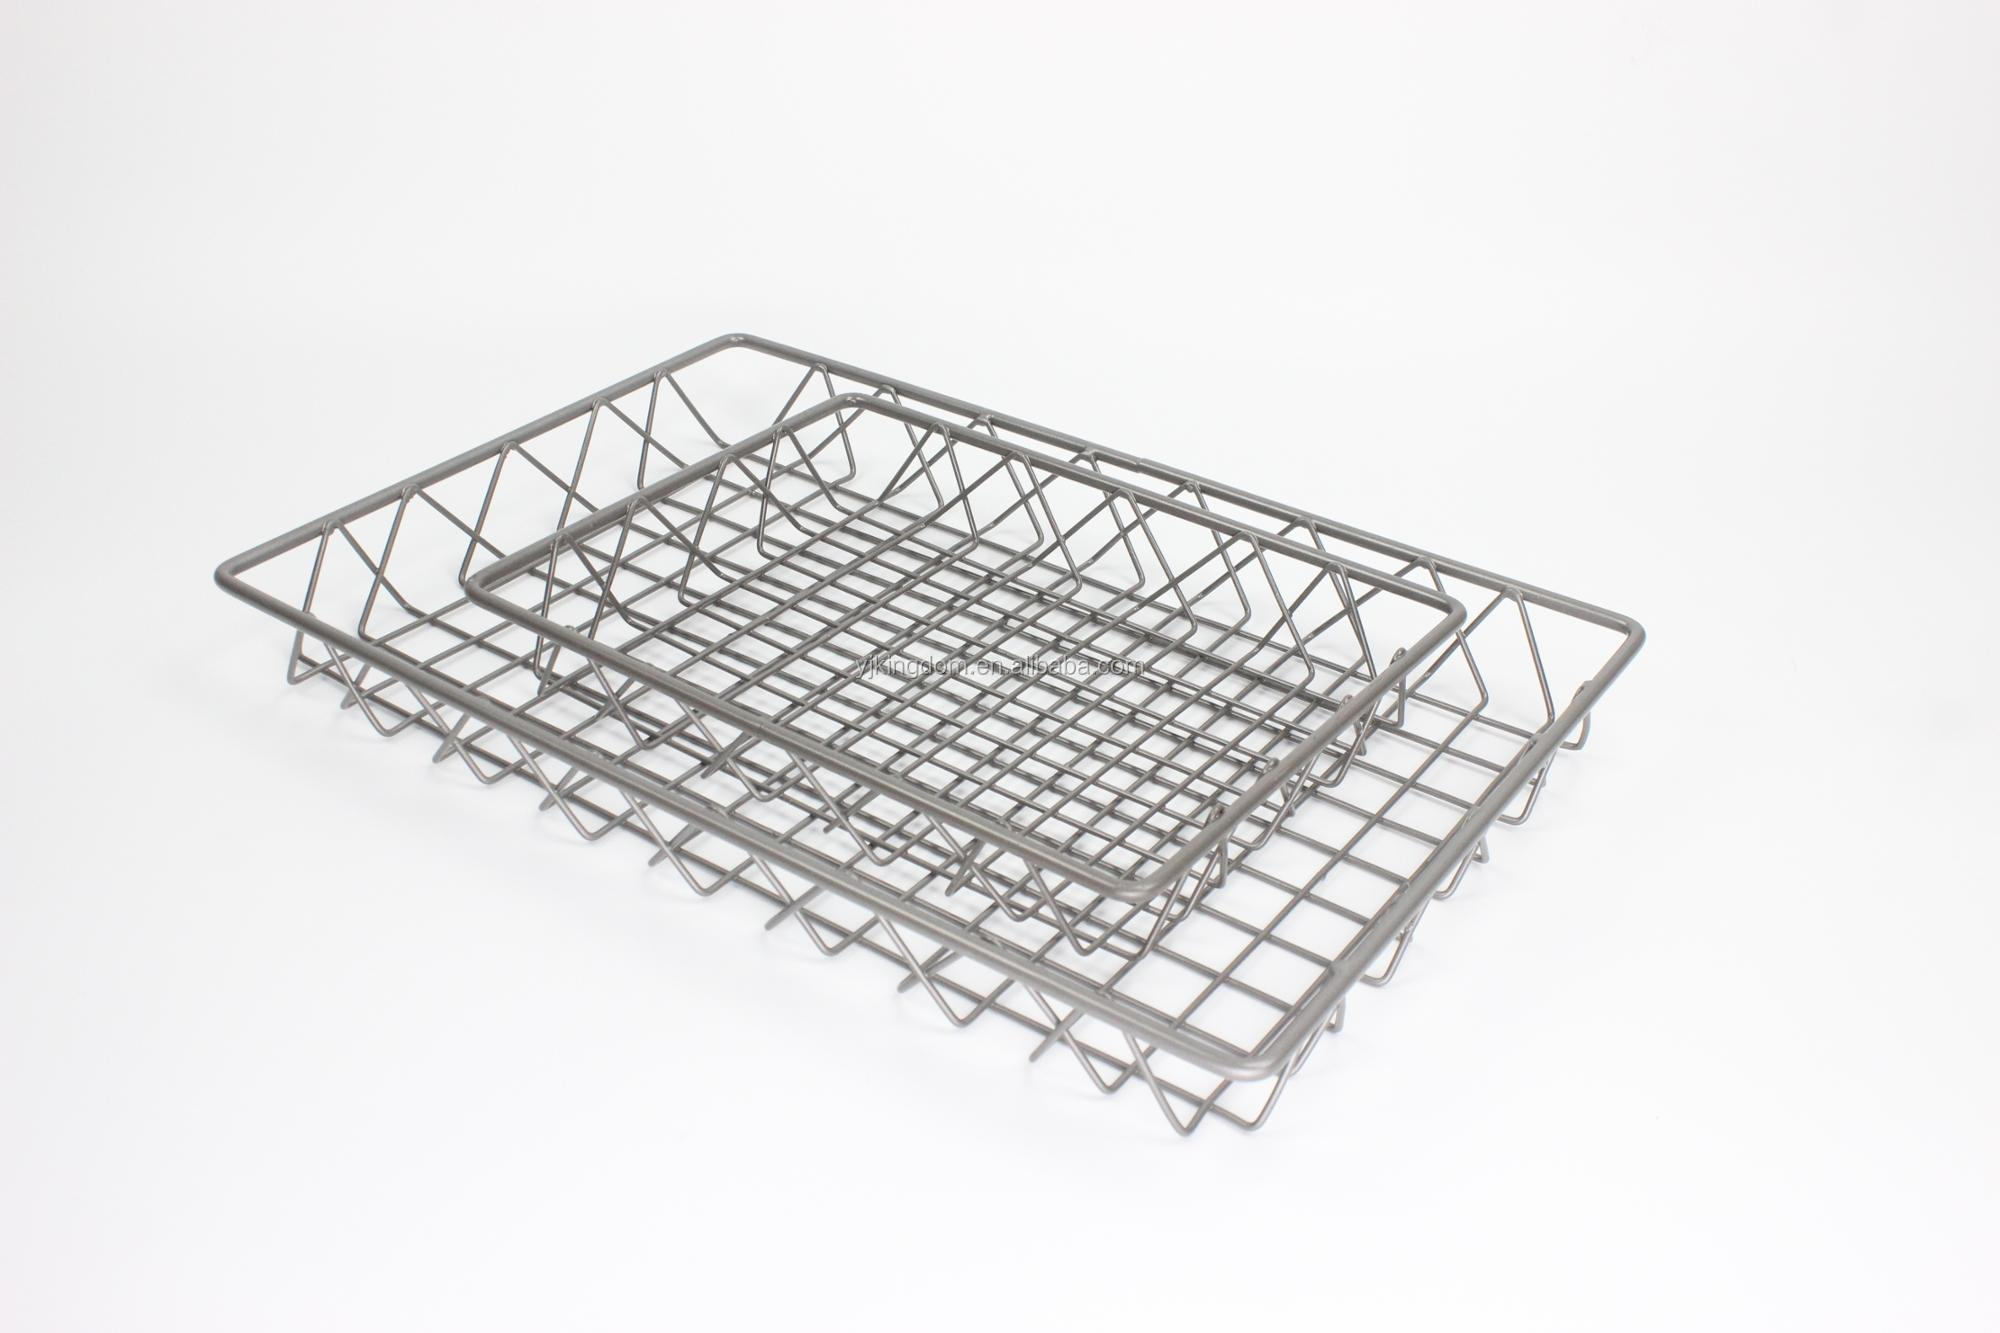 550 64b Home Small Size Desk Metal Wire Mesh Basket For